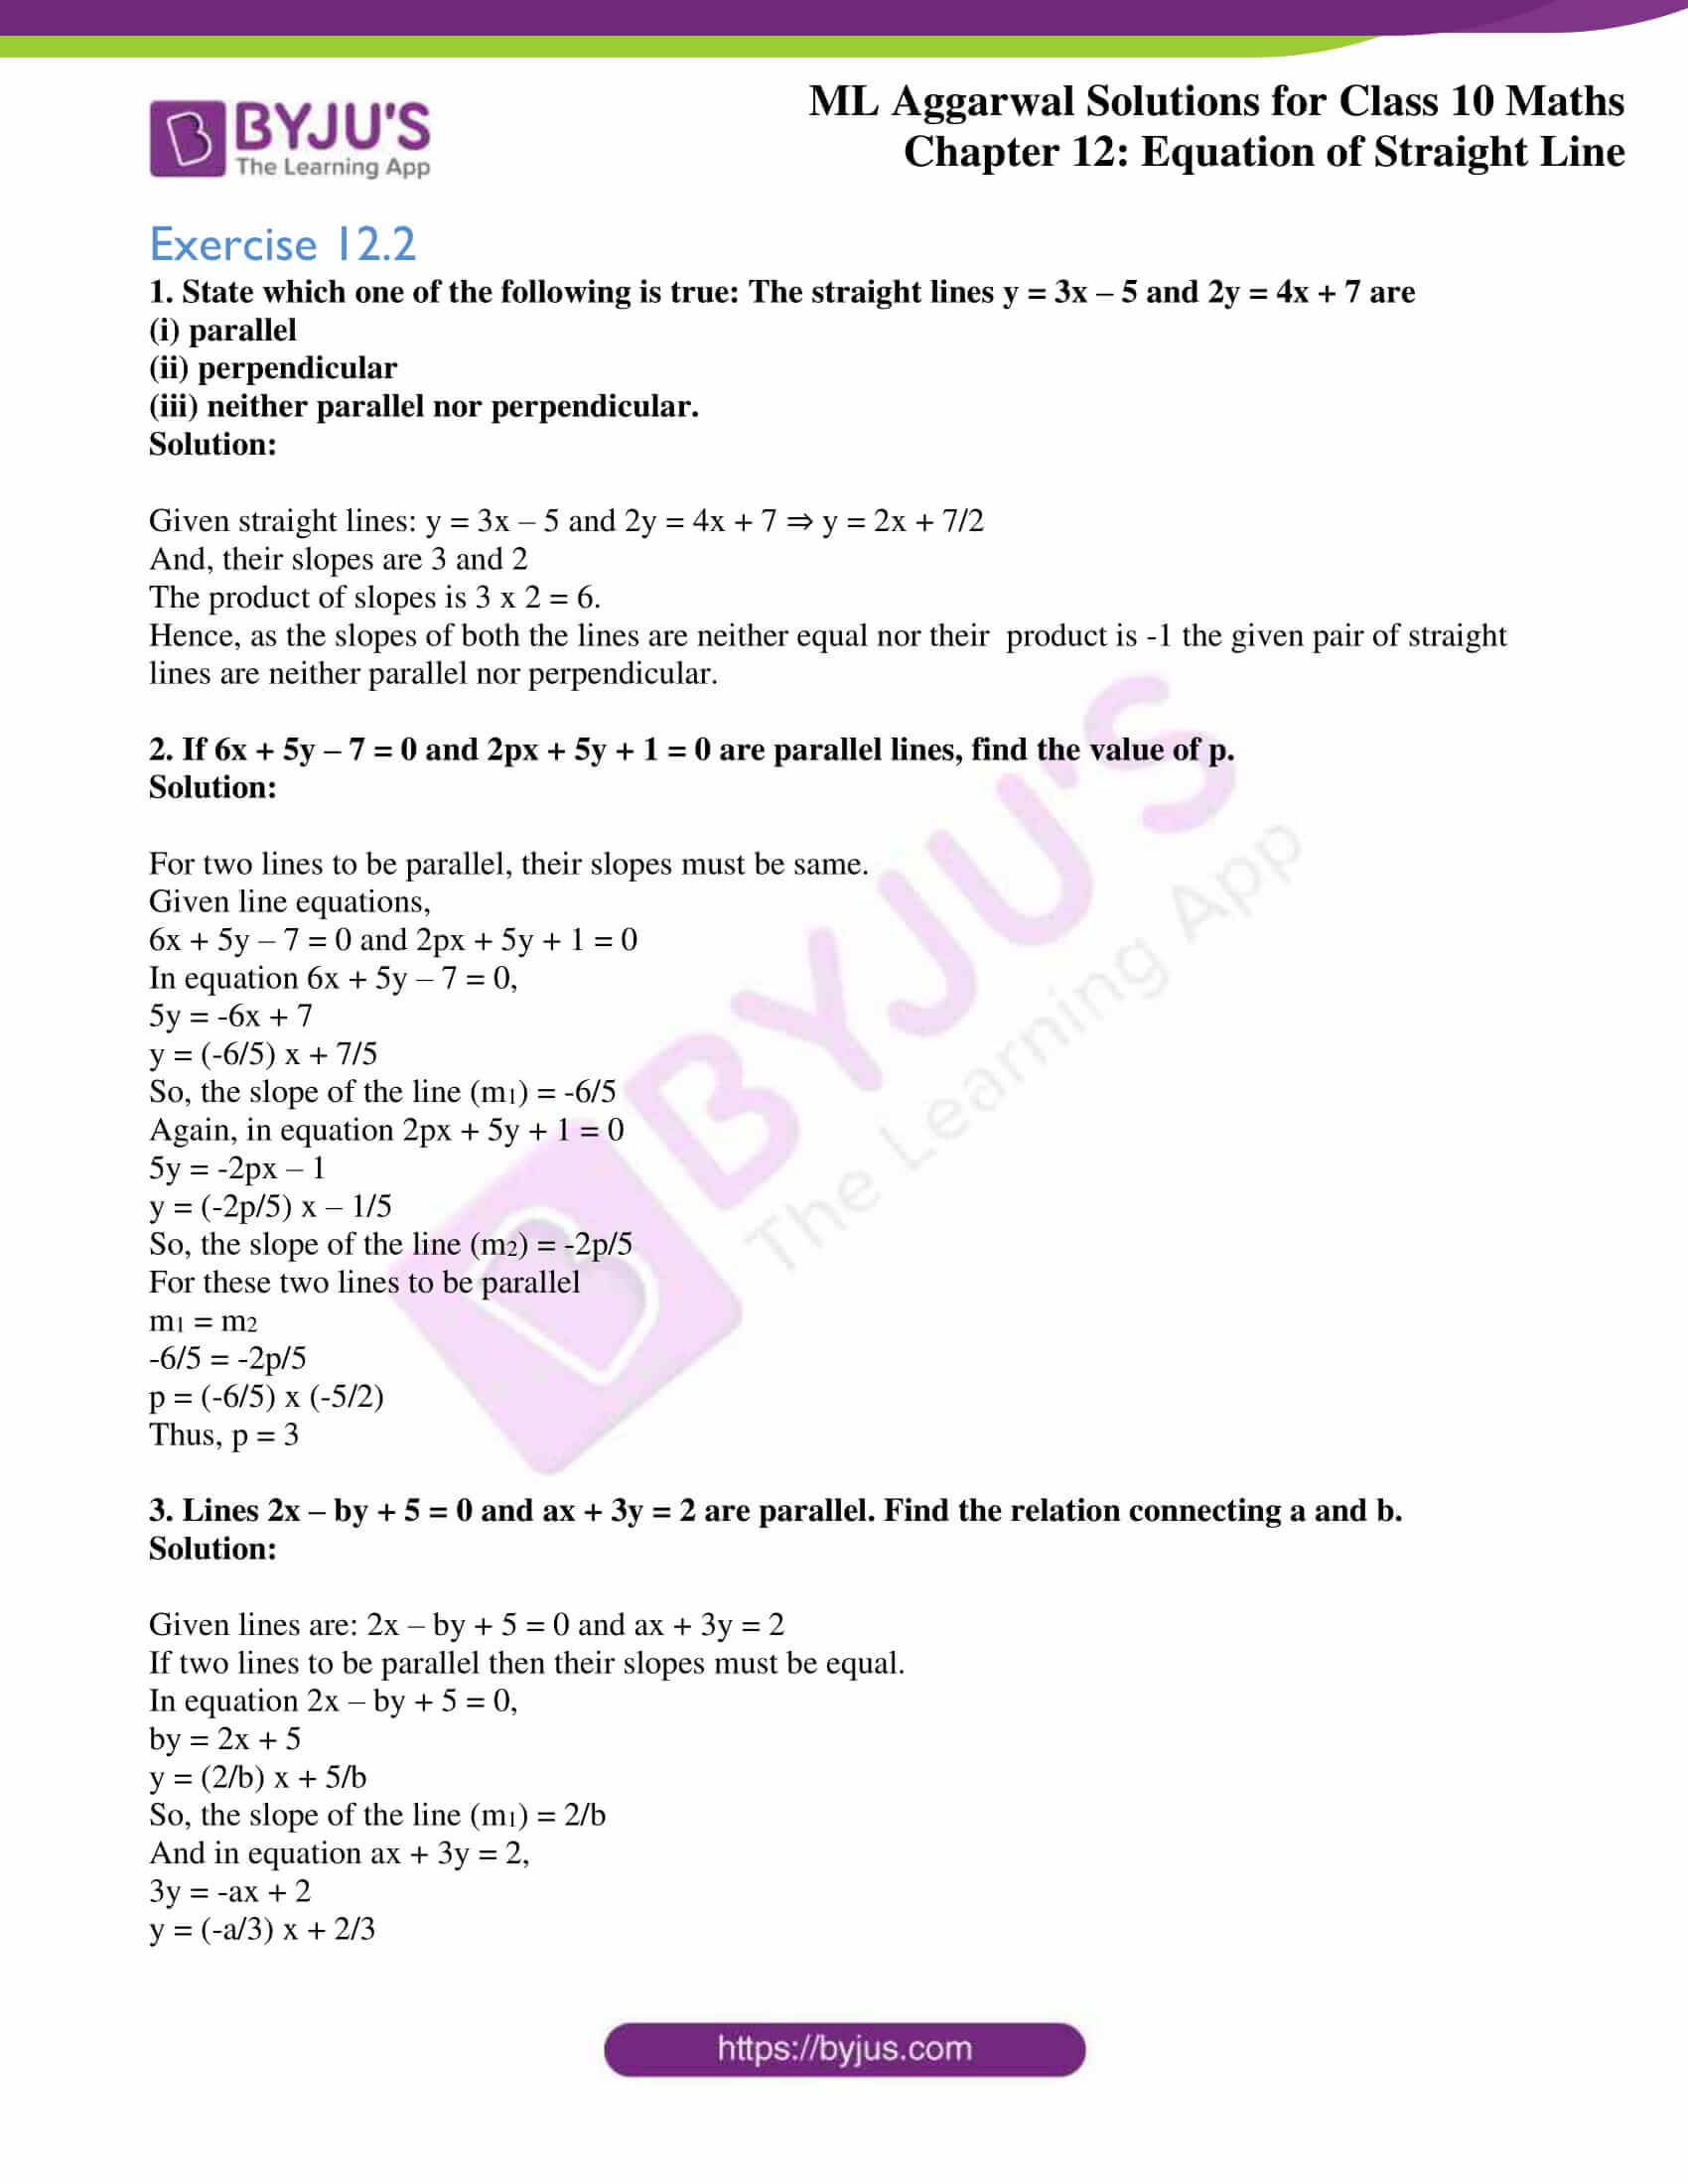 ml aggarwal solutions for class 10 maths chapter 12 15